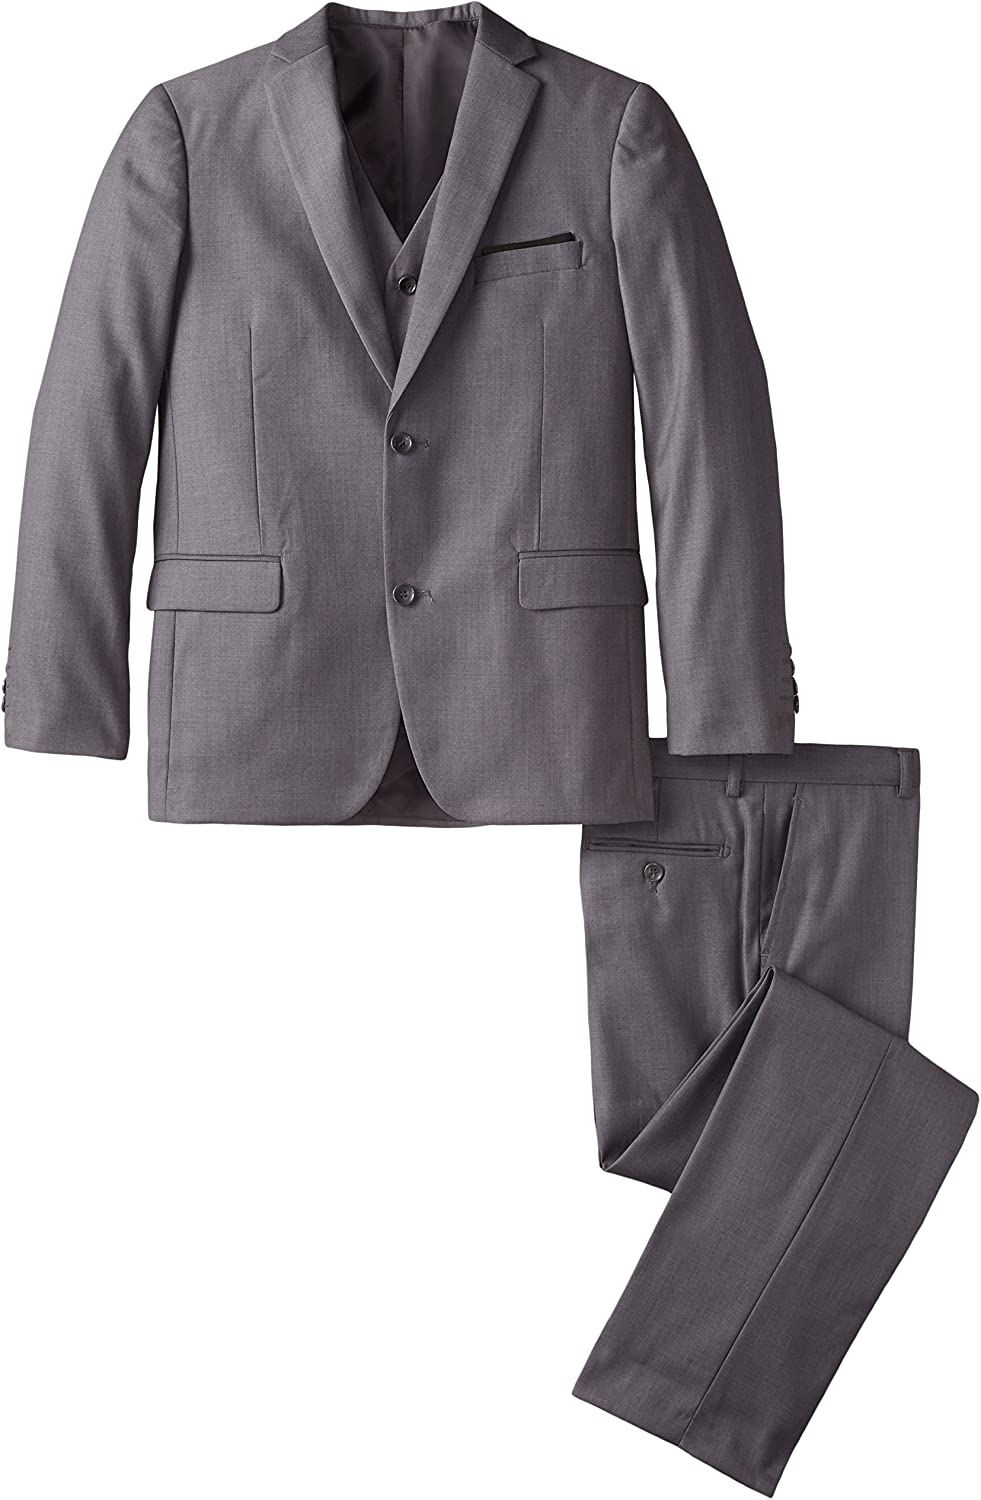 AXNY a.x.n.y Boys' Tailored Piece 3 Suit Solid Finally New color resale start